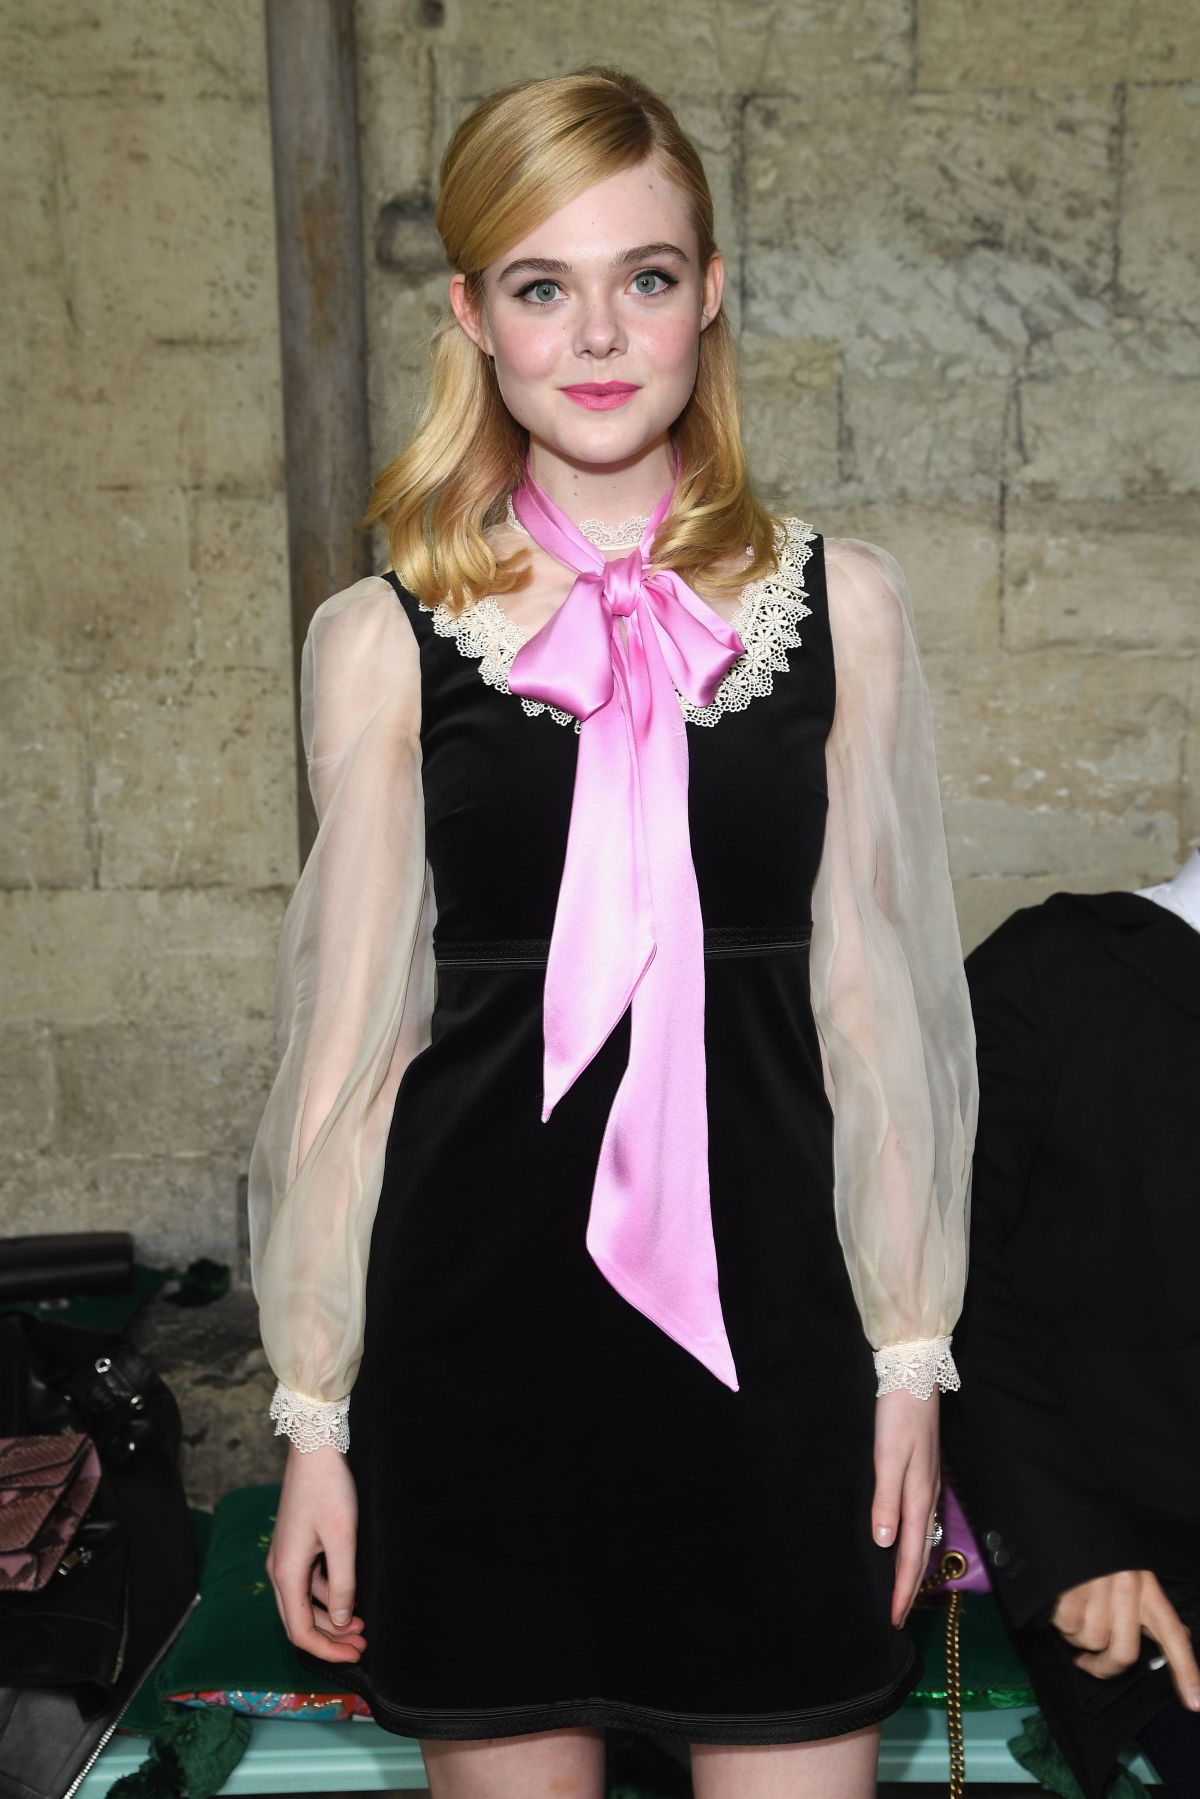 ELLE FANNING at 2017 Gucci Cruise Fashion Show in London 06/02/2016